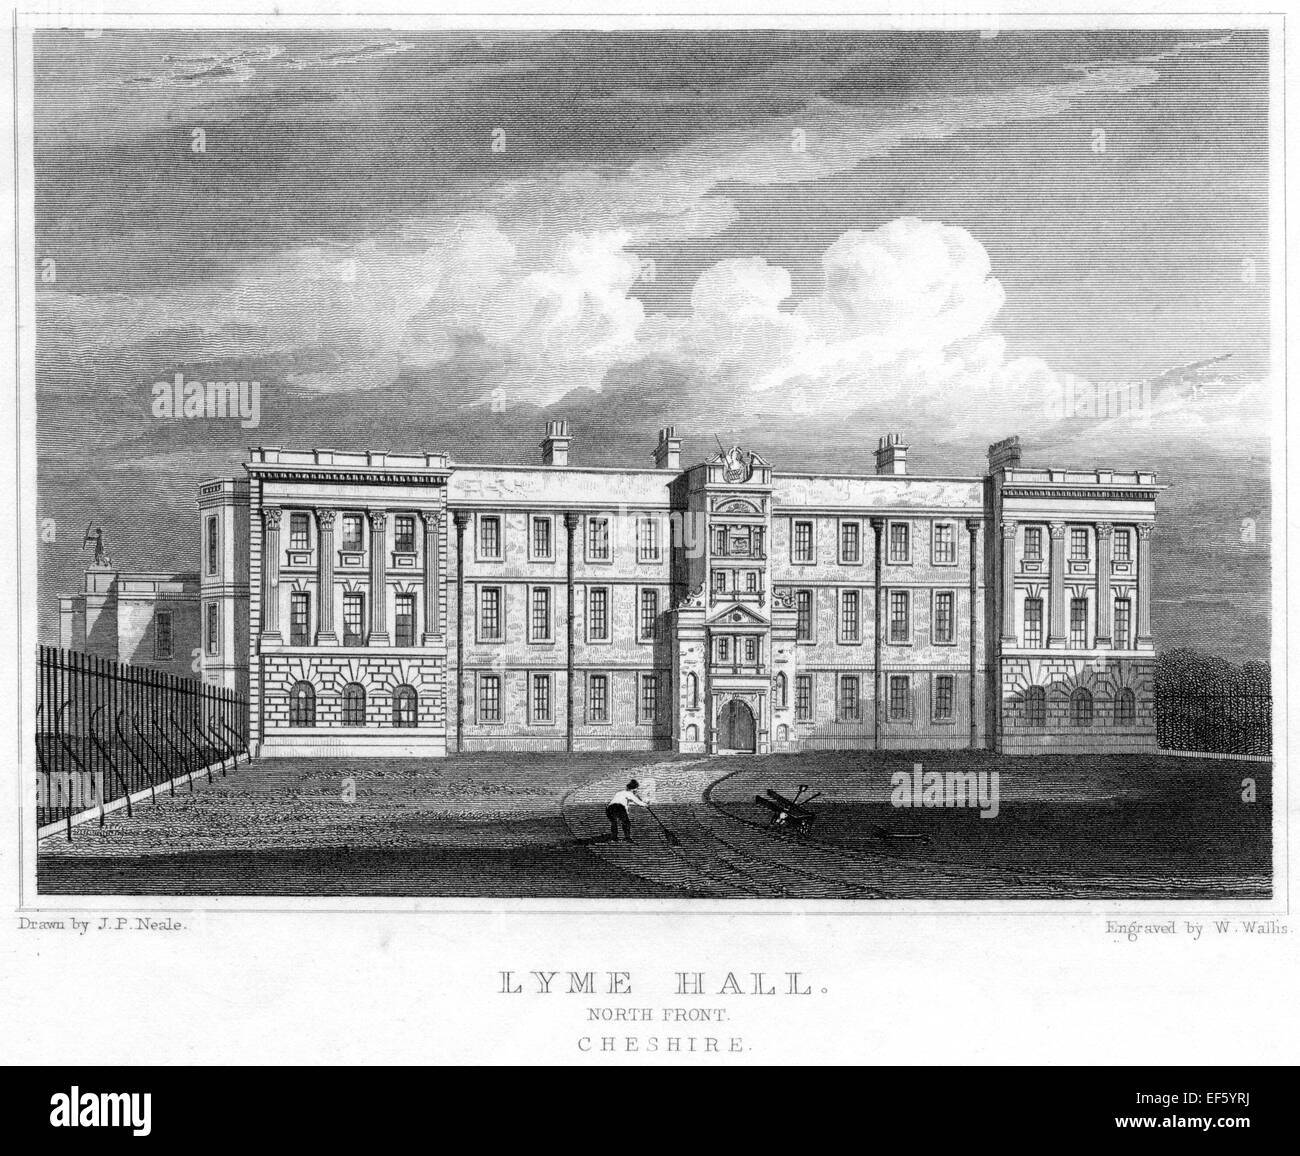 An engraving of Lyme Hall, North Front, Cheshire scanned at high resolution from a publication printed in 1830. - Stock Image